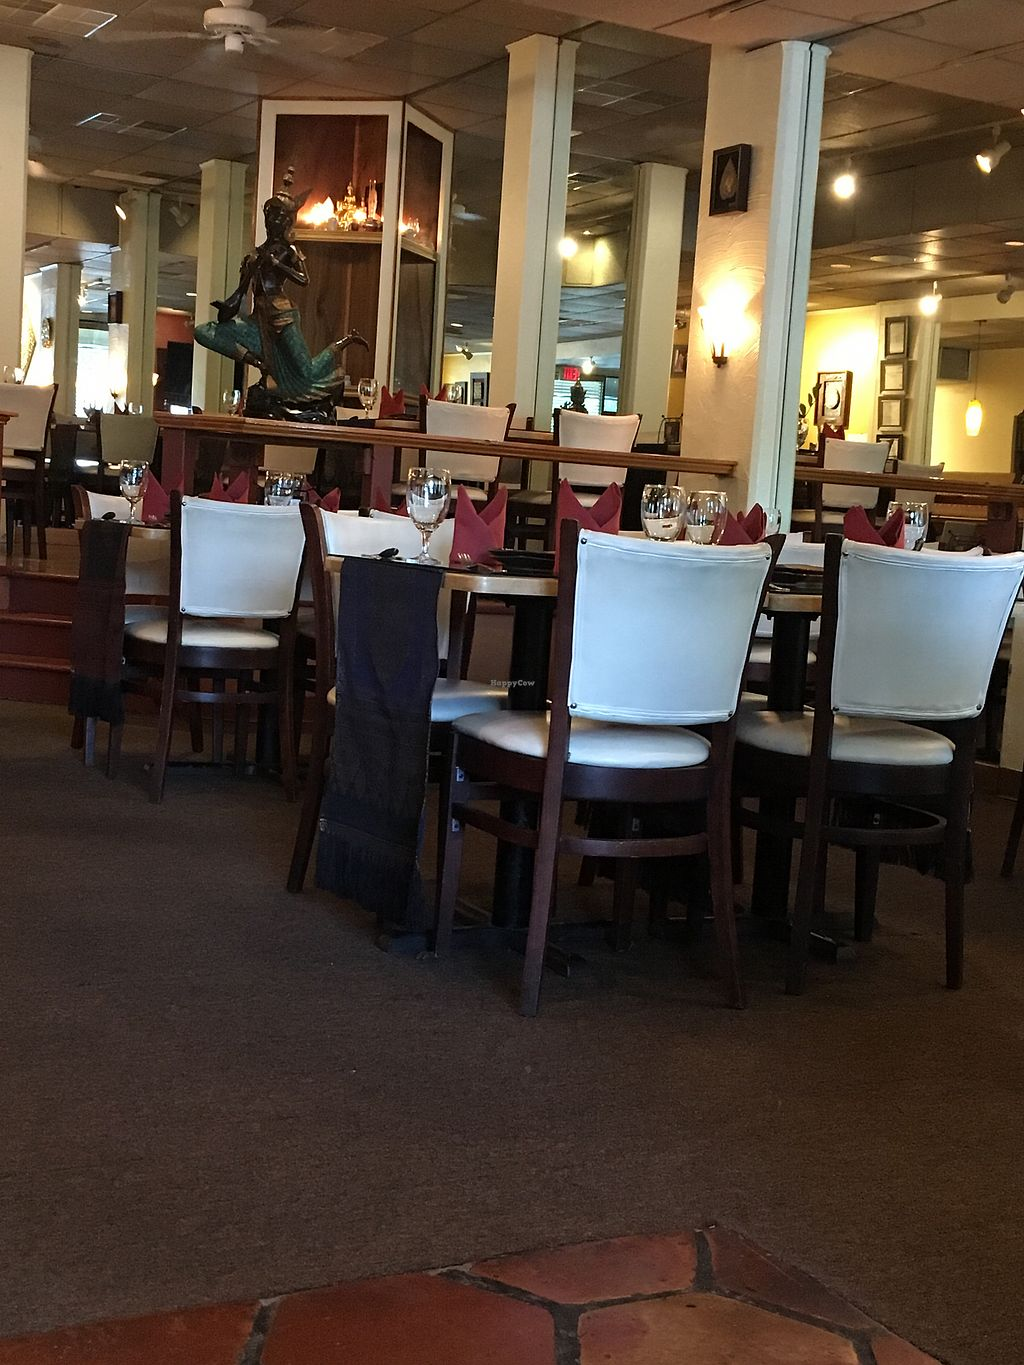 "Photo of Lai Thai Cuisine - Somsak  by <a href=""/members/profile/nardanddee"">nardanddee</a> <br/>interior <br/> July 18, 2017  - <a href='/contact/abuse/image/17291/281940'>Report</a>"